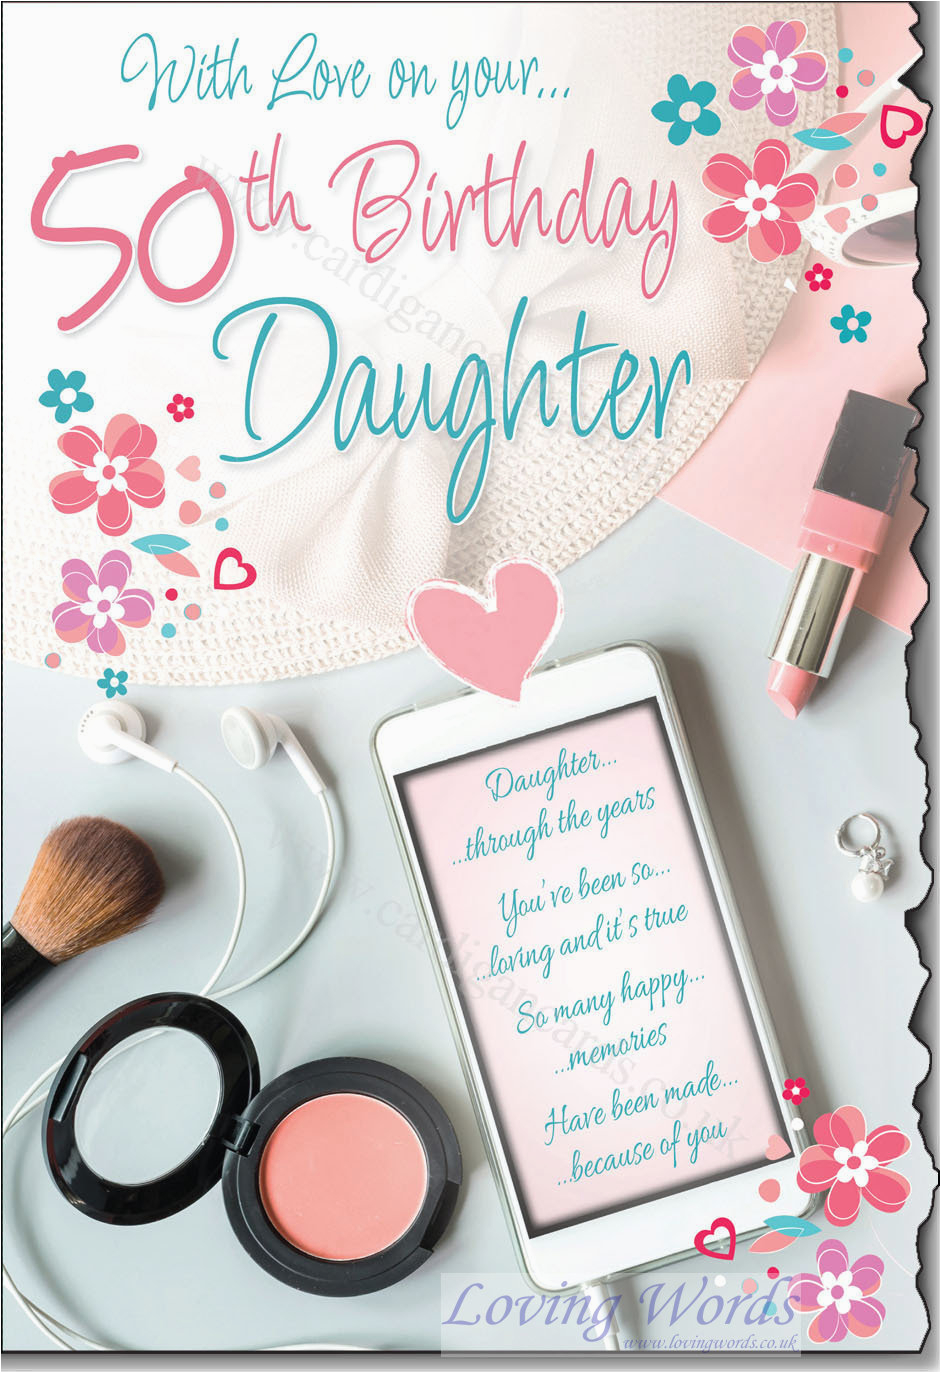 50th Birthday Card For Daughter Greeting Cards By Loving Words